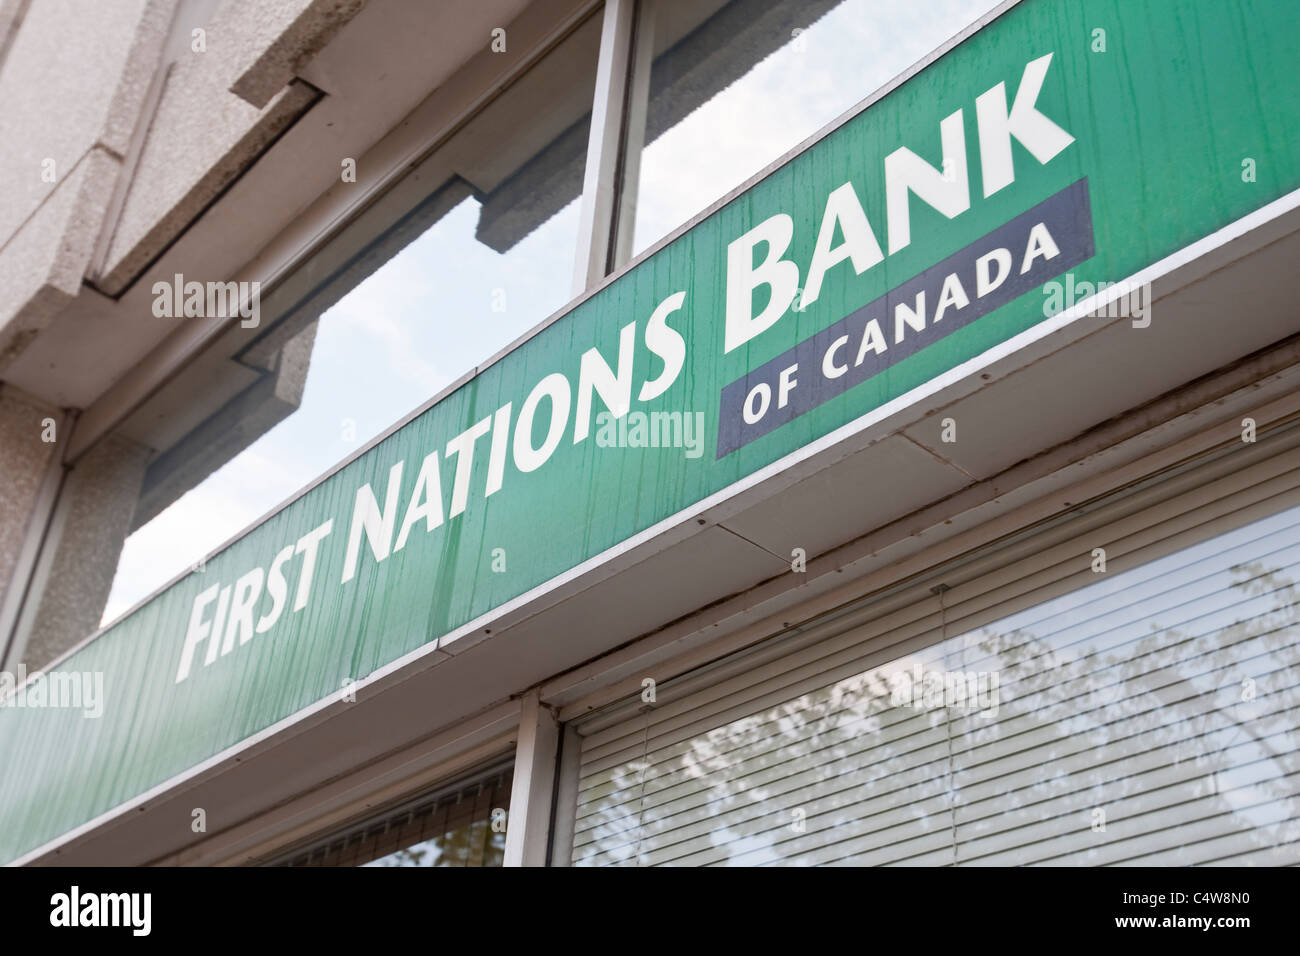 A First Nations Bank of Canada branch is pictured in Winnipeg - Stock Image